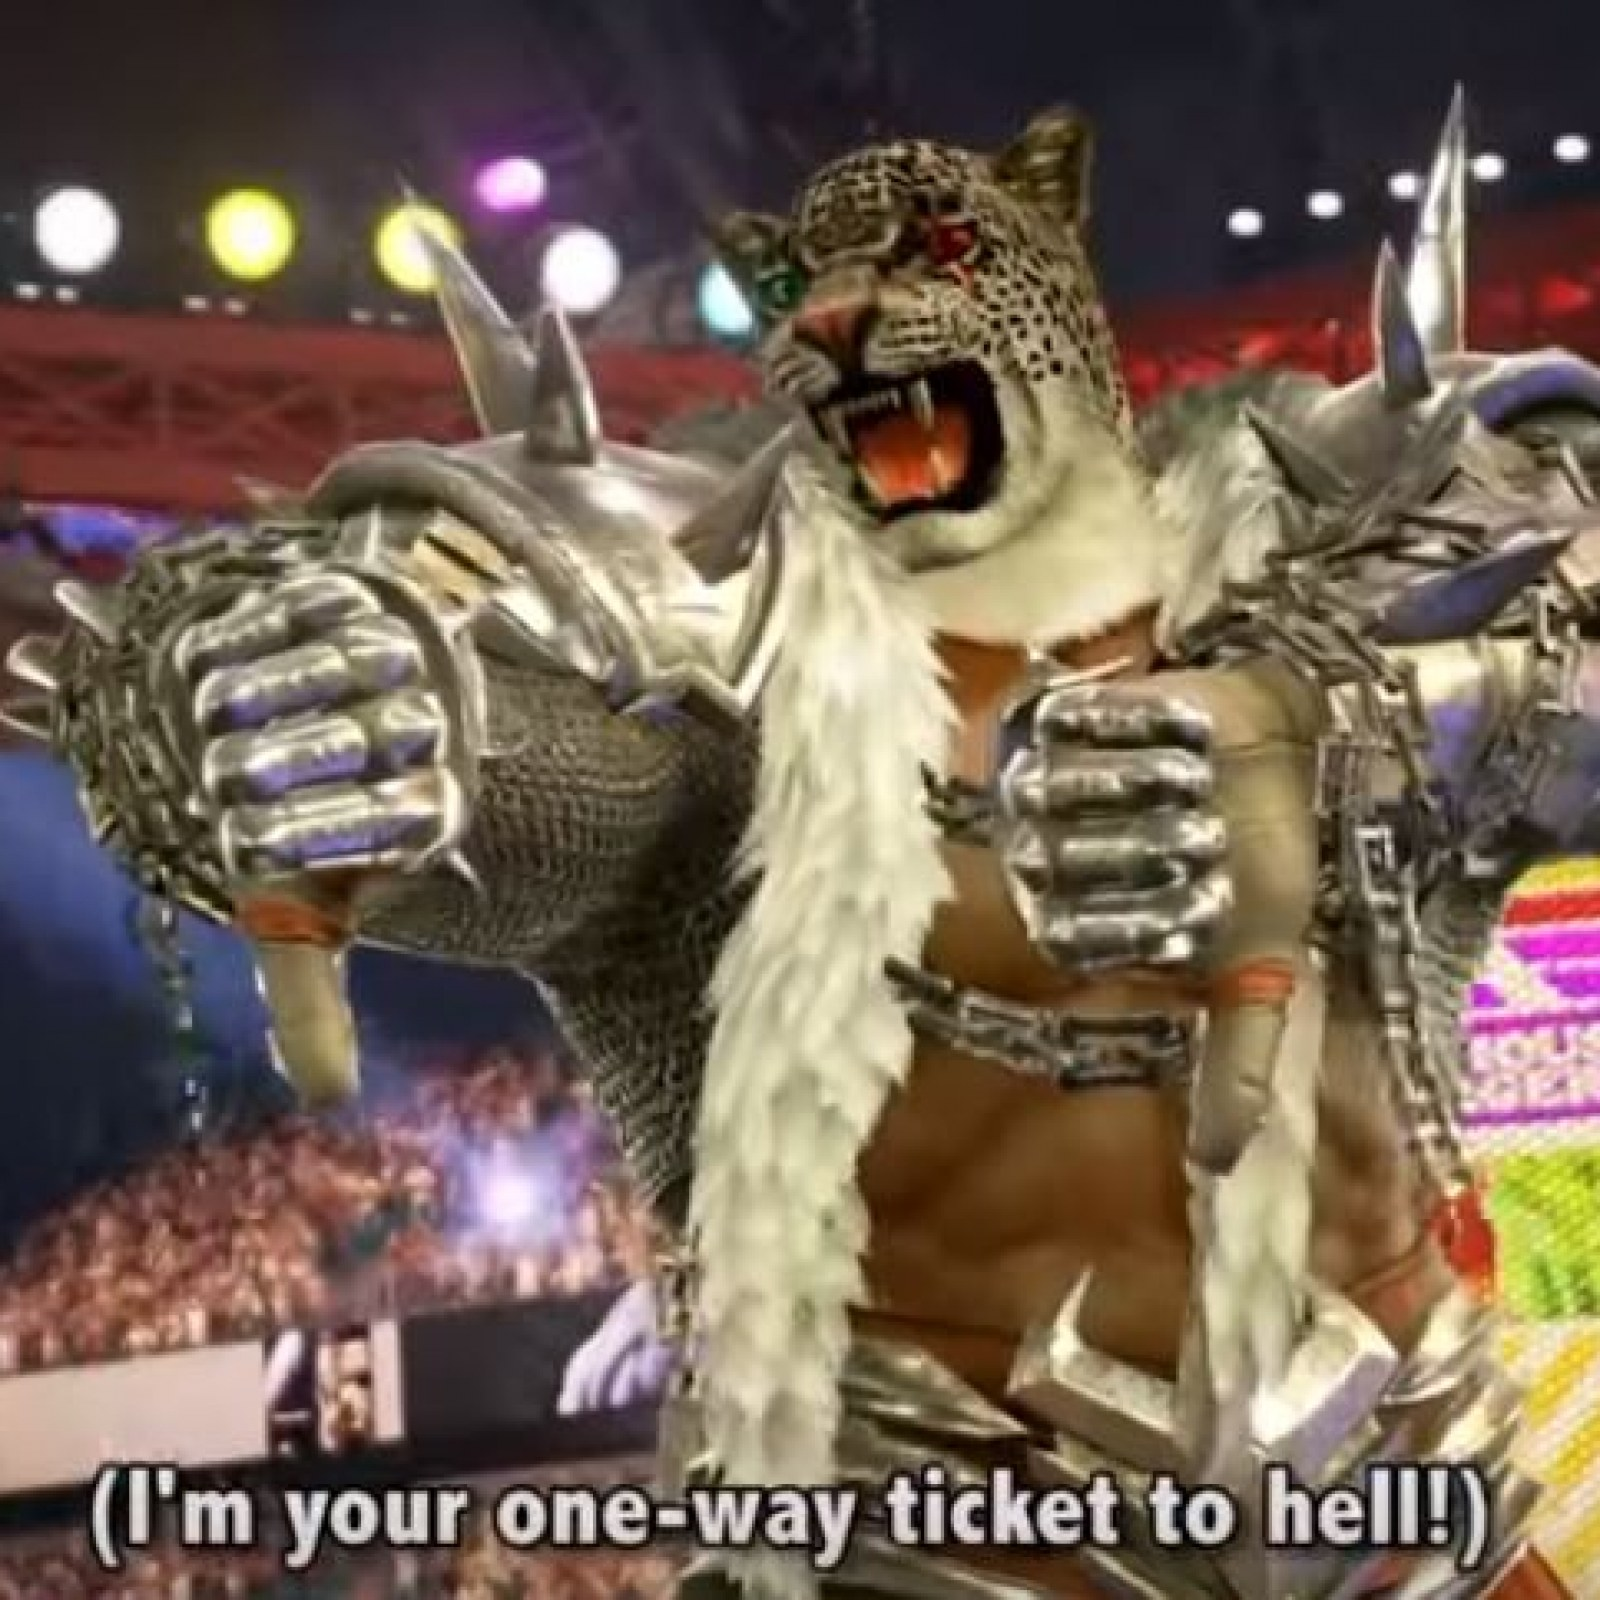 Tekken 7 Armor King And Craig Marduk What Time Can You Download